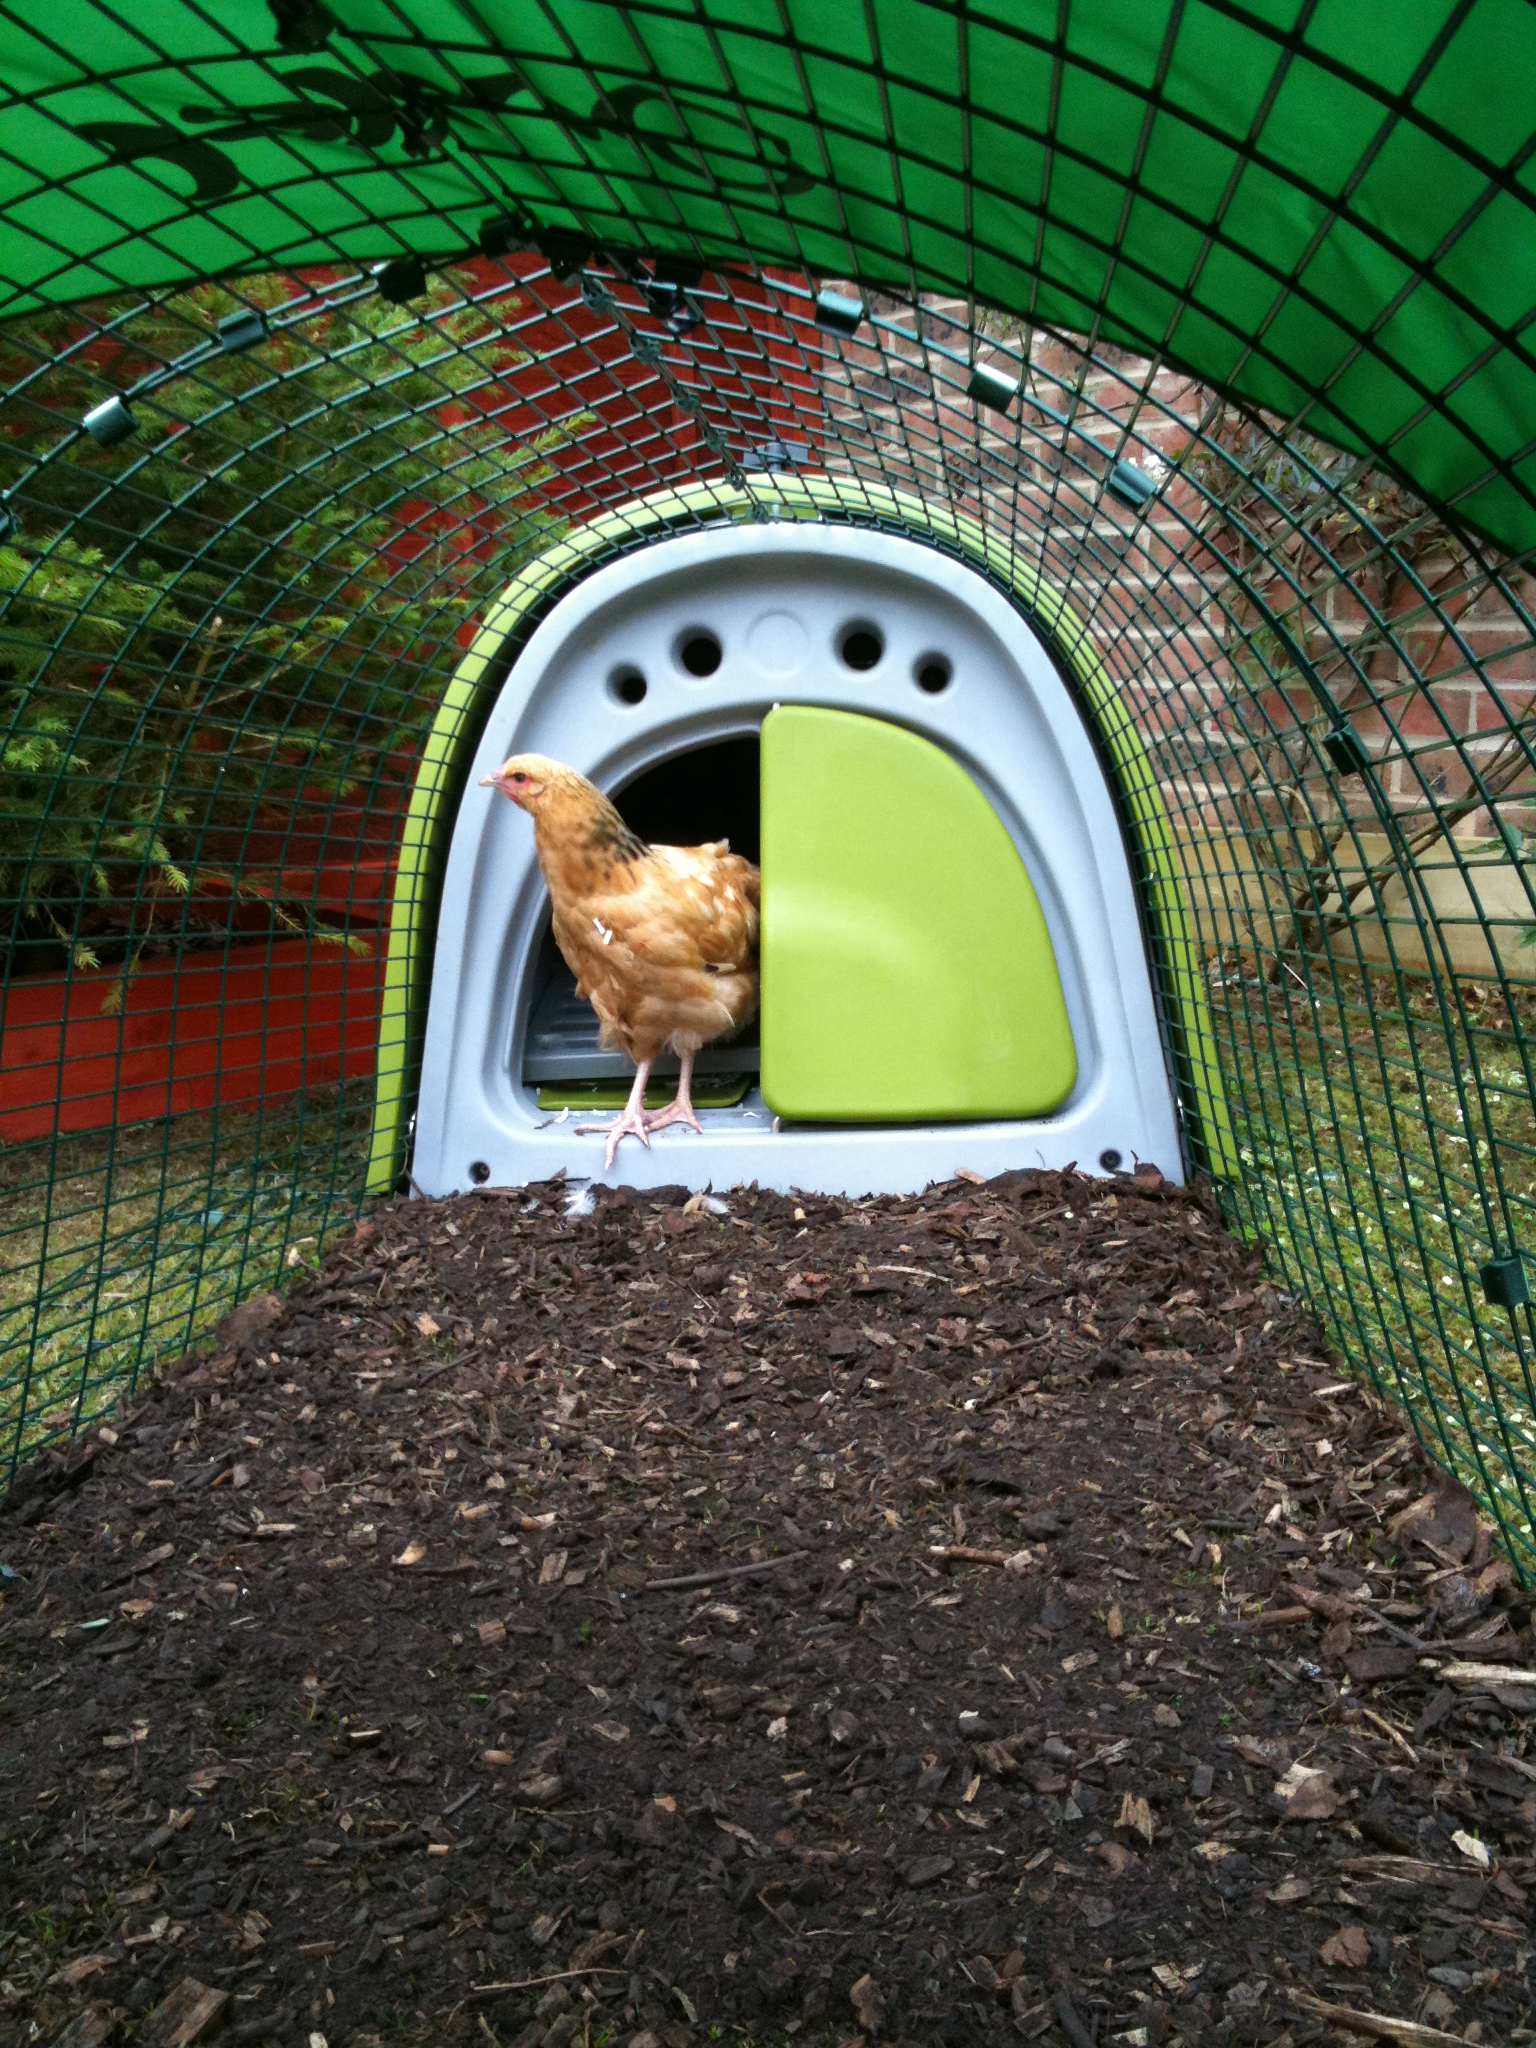 Tim Buswell has put his Eglu Classic on a bed of wood shaving which chickens love